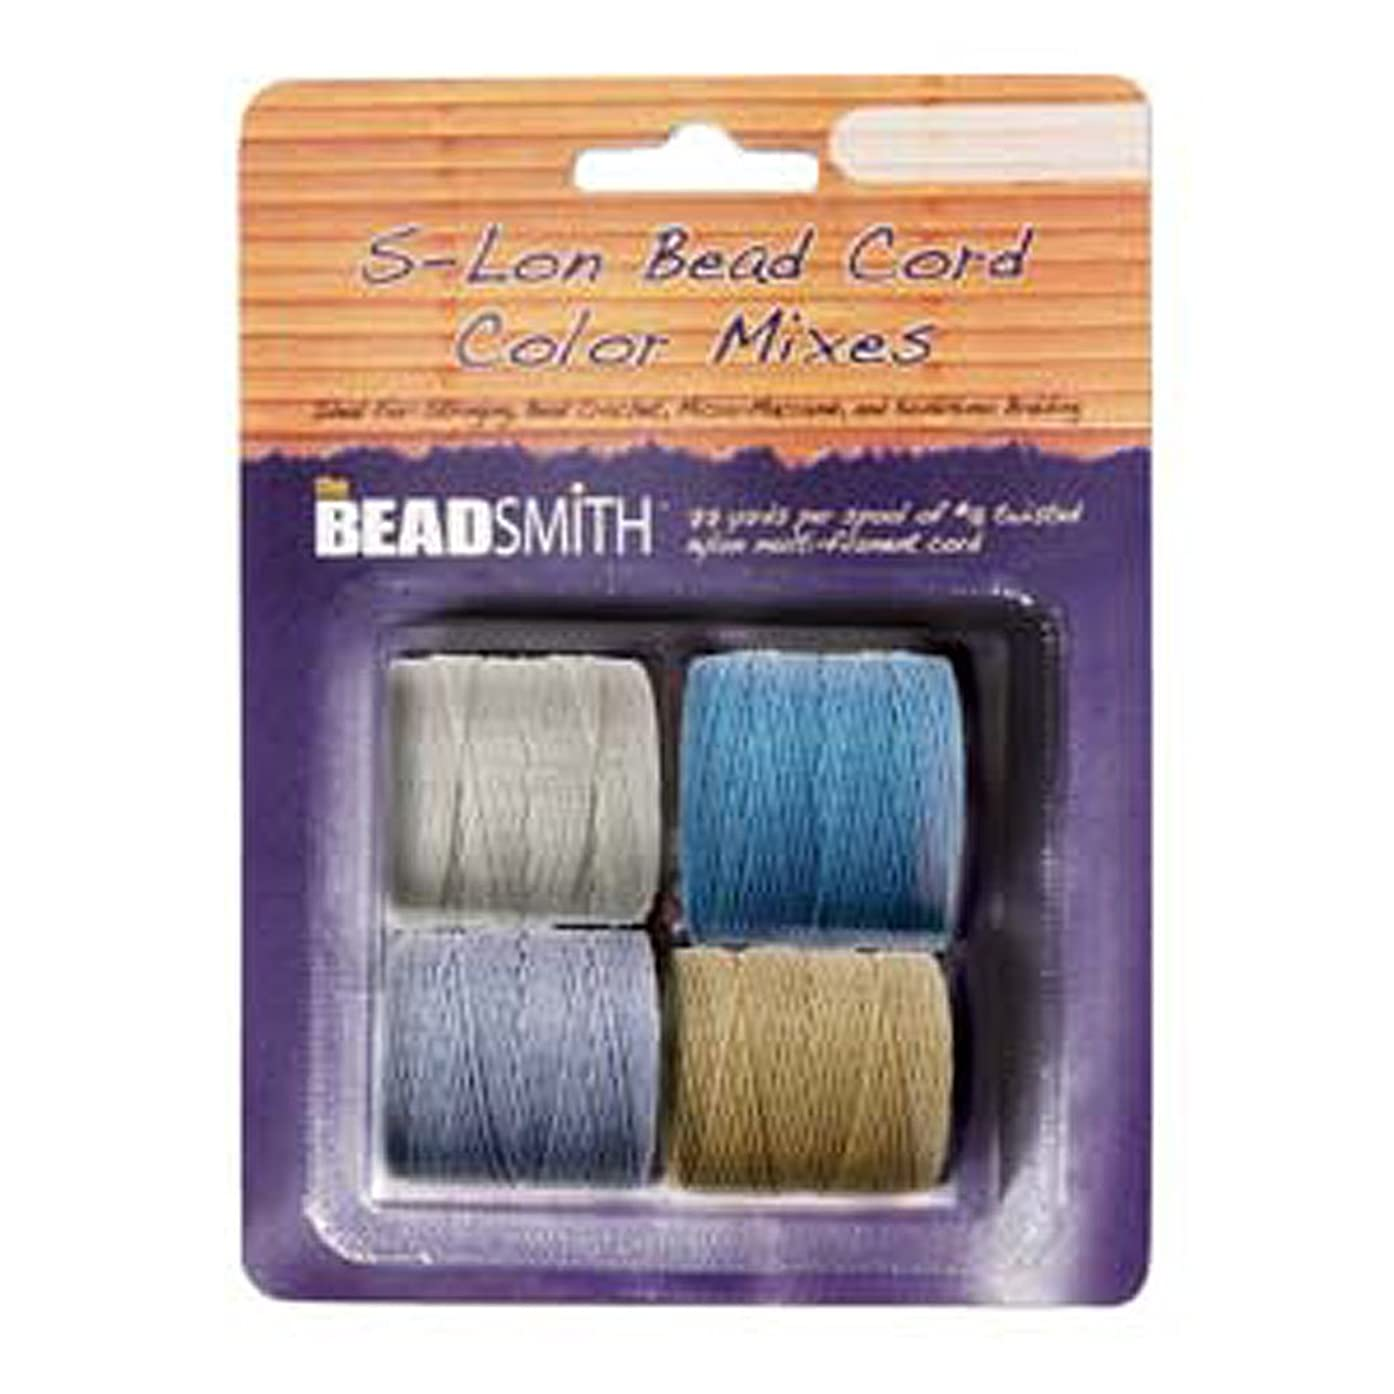 4 Spools Super-lon #18 Cord Ideal for Stringing Beading Crochet and Micro-macram Jewelry Compatible with Kumihimo Projects S-lon Chino Mix